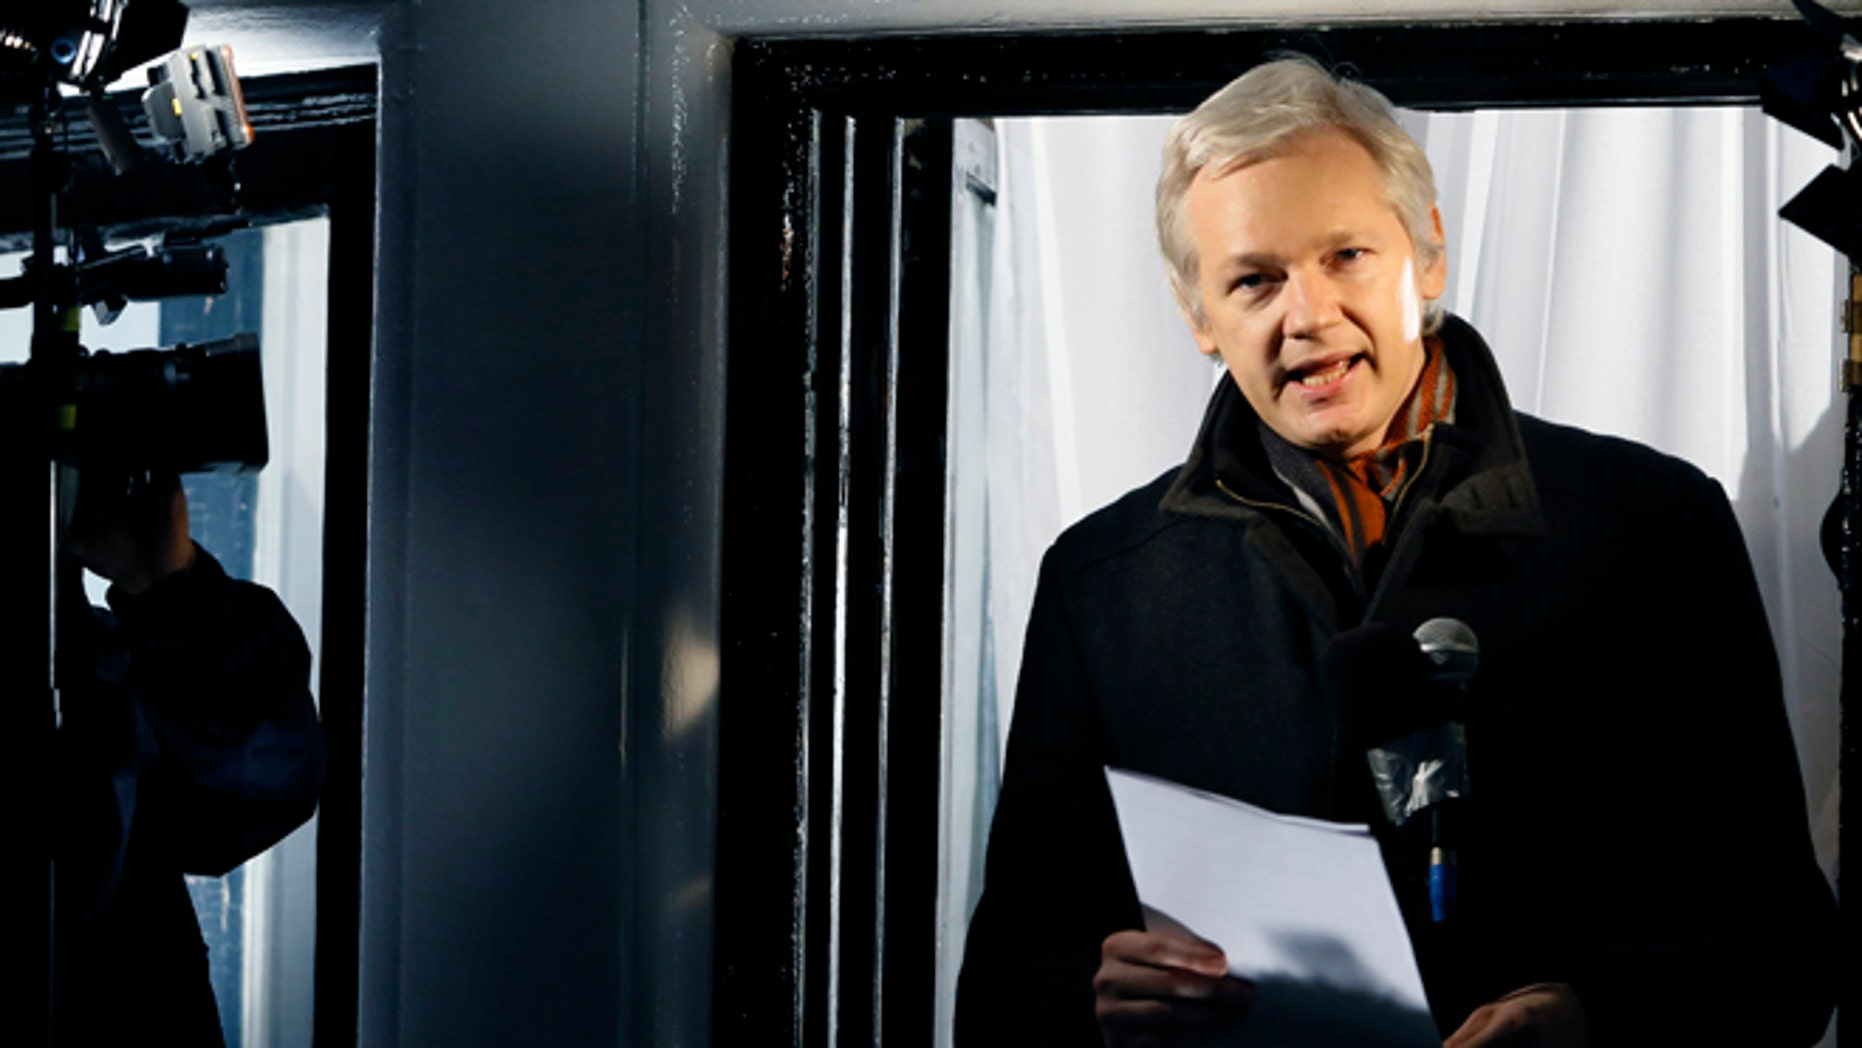 Julian Assange, founder of WikiLeaks, in a Dec. 20, 2012, file photo.